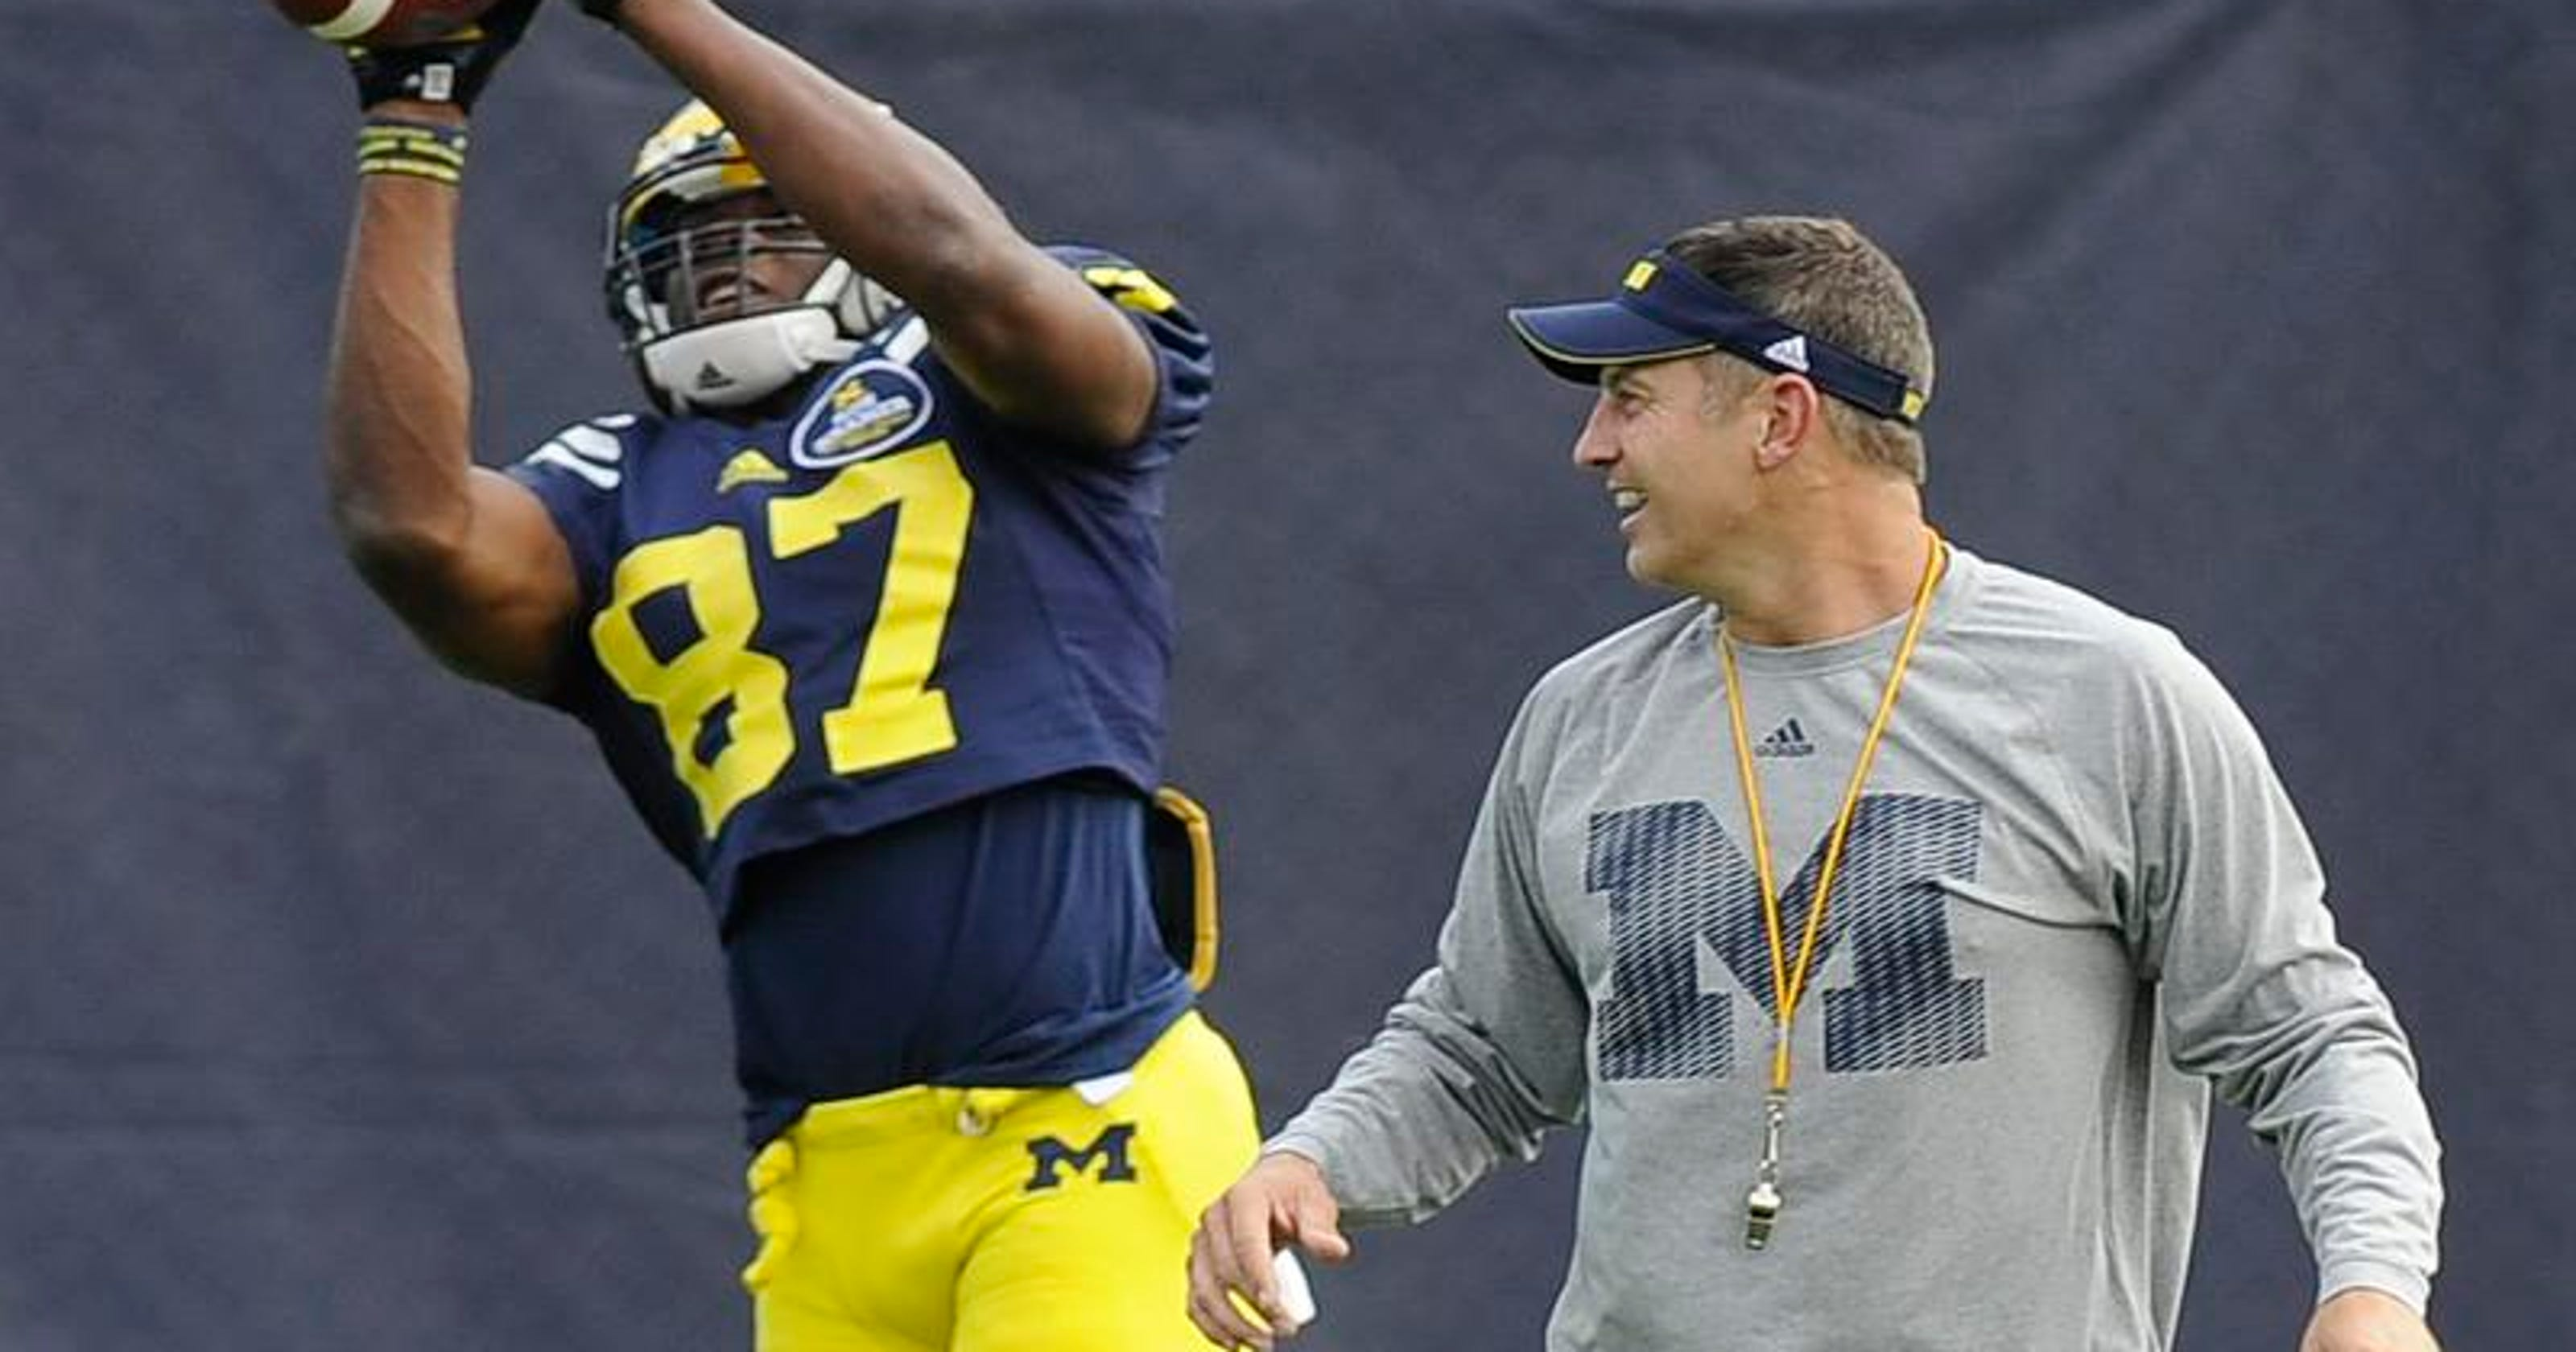 new concept eedd7 3e76a Michigan's Devin Funchess wearing coveted No. 1 jersey